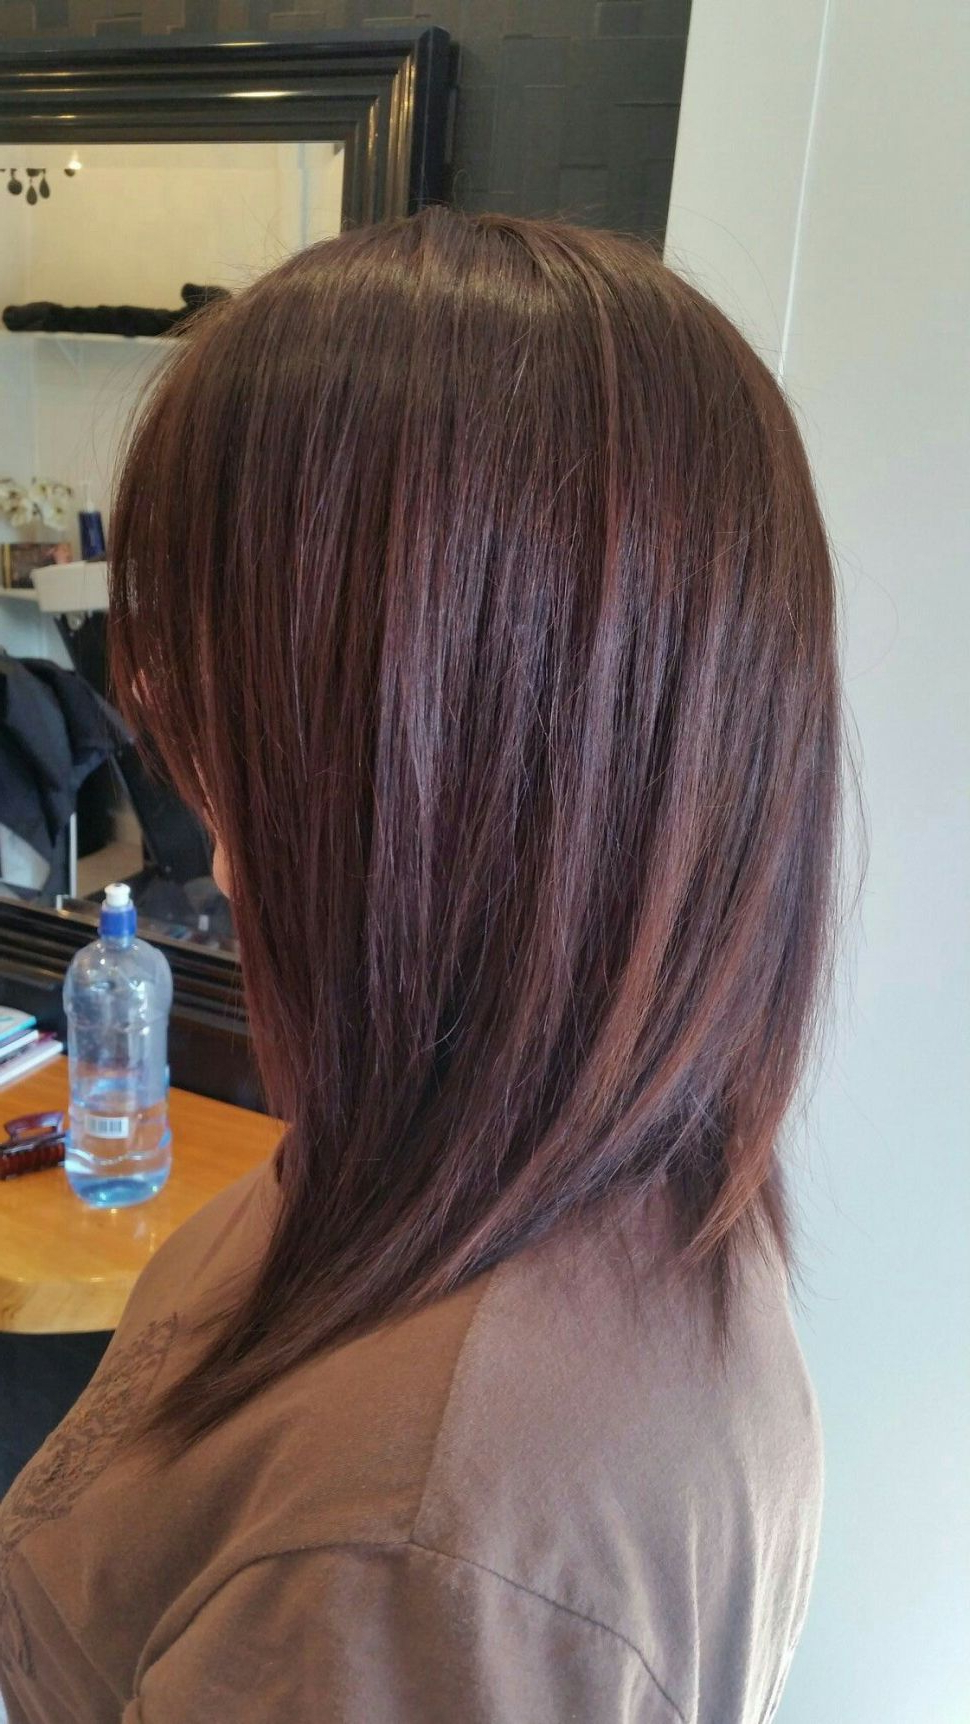 Hairstyles : Aline Textured Long Bob Hair Pinterest Styles With A Line Haircuts For A Round Face (View 5 of 20)